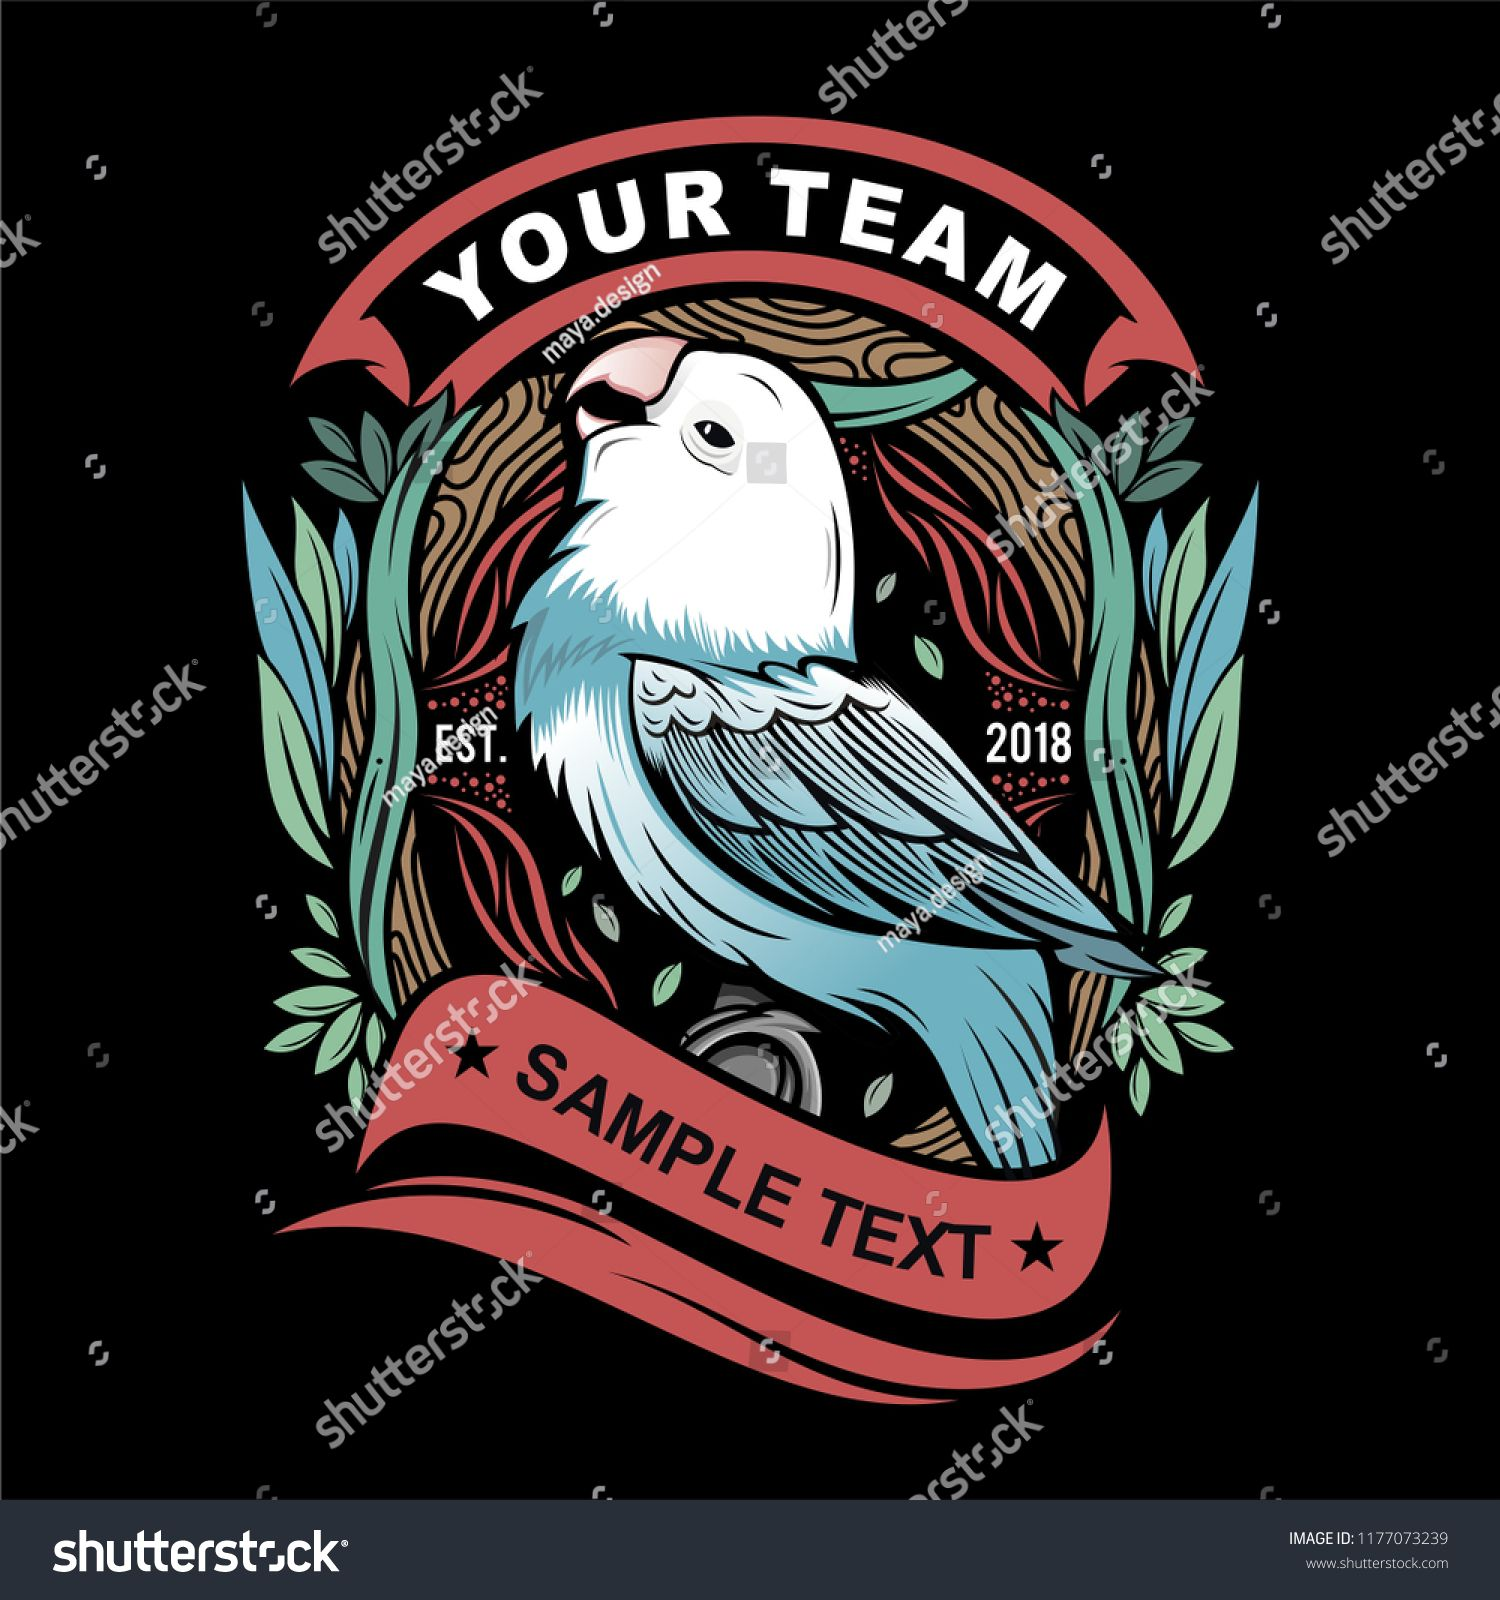 bird logo templates lovebird vector and illustration templates logo bird illustration burung karya seni 3d seni 3d bird logo templates lovebird vector